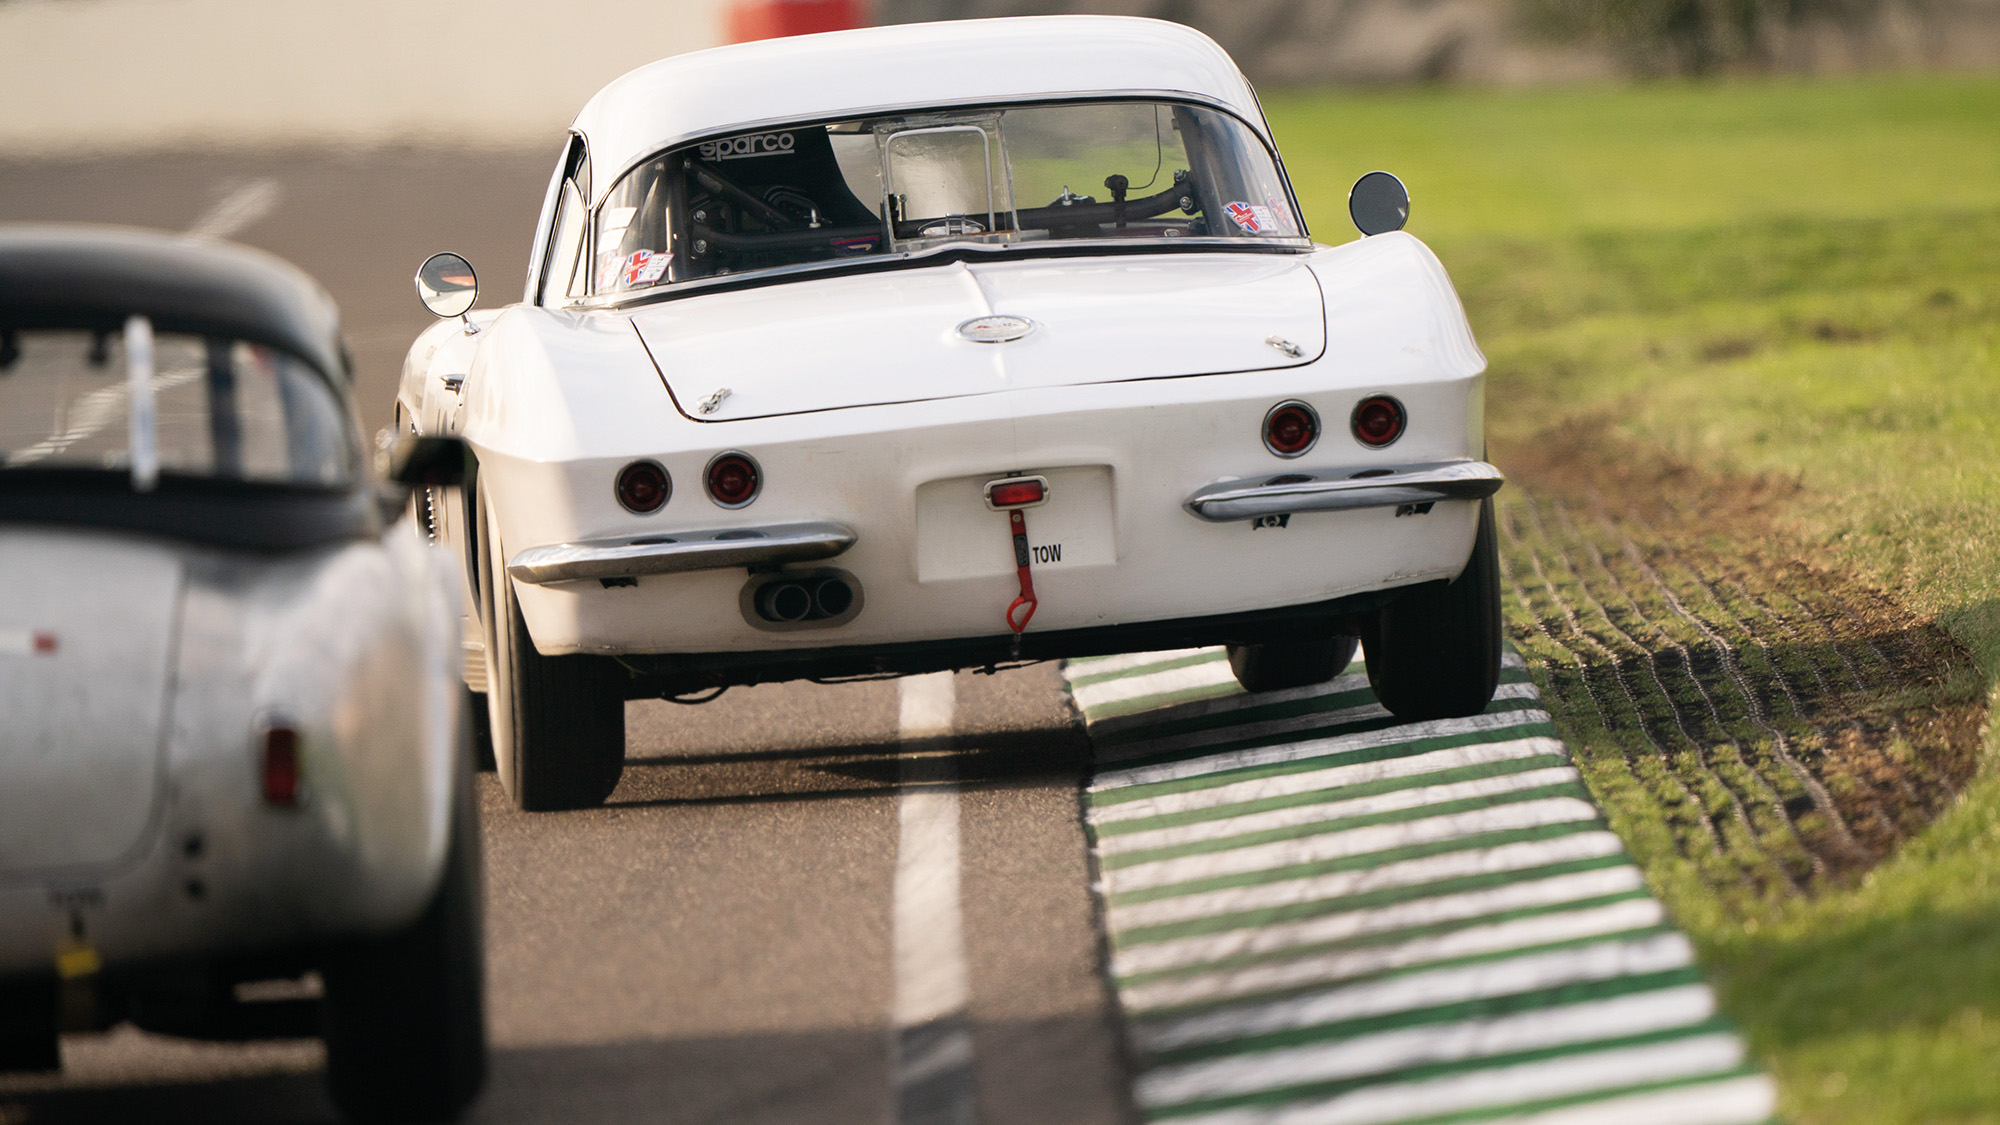 Rear view of a car during Goodwood SpeedWeek 2020